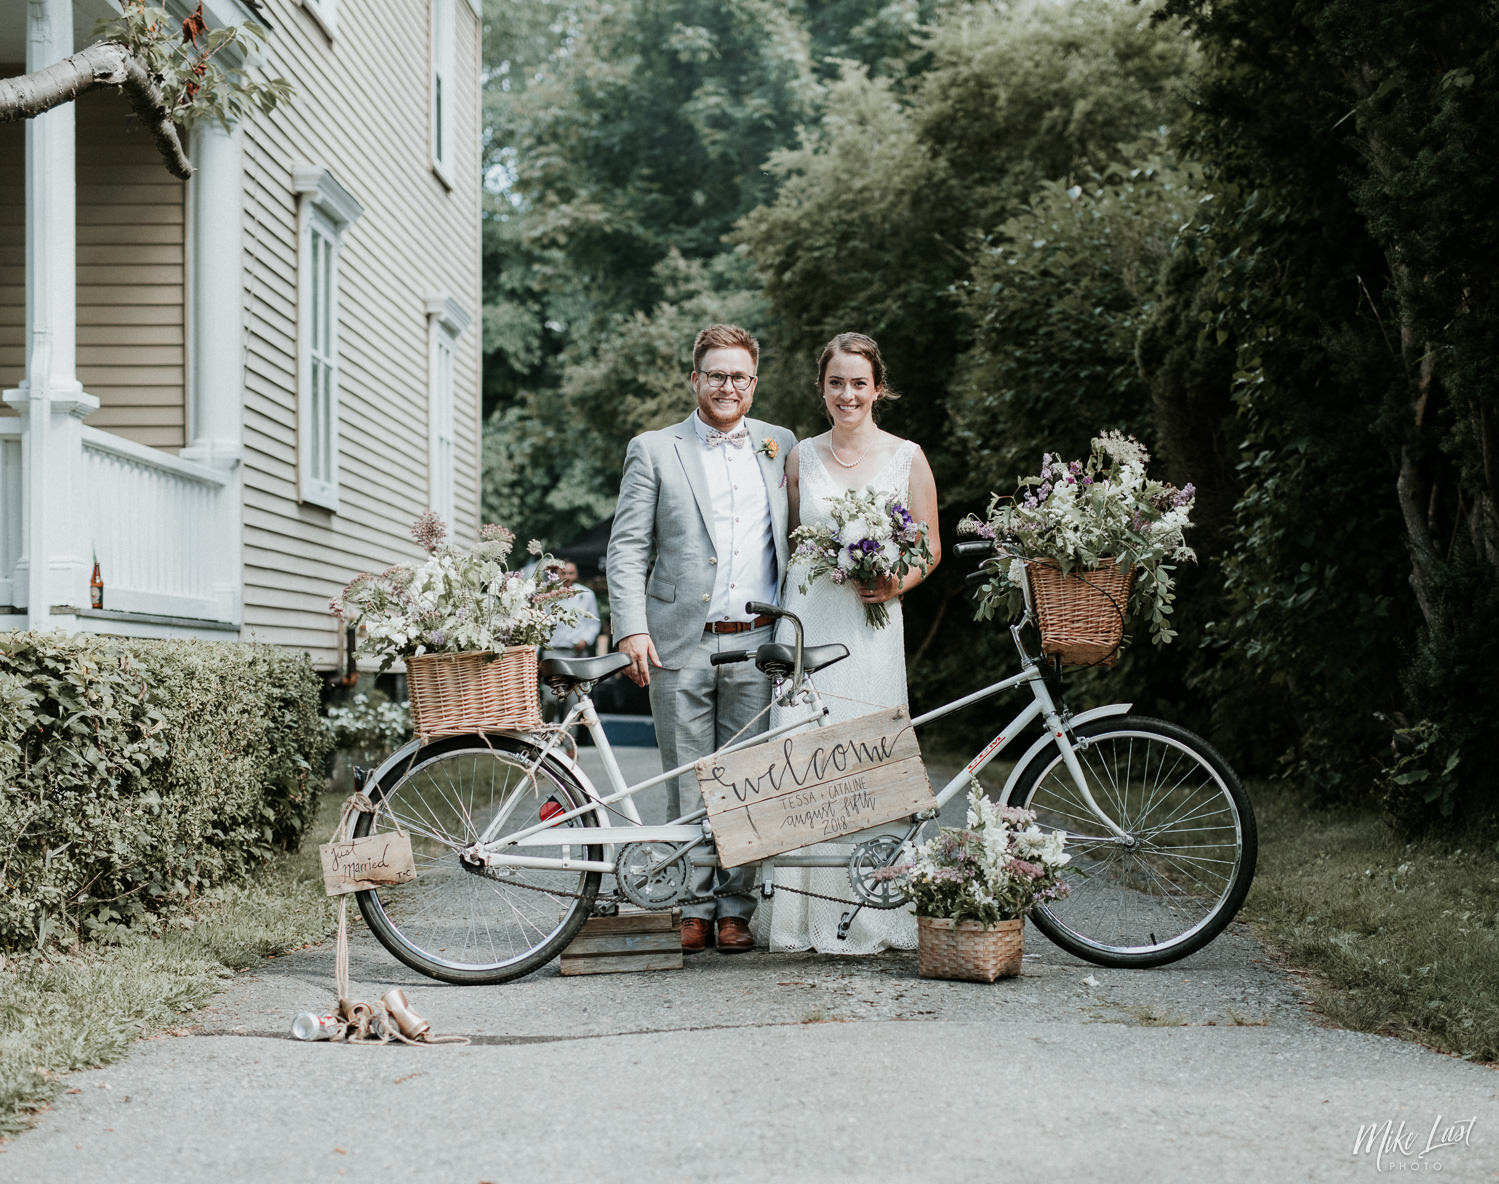 Bride and groom with a tandem bicycle.